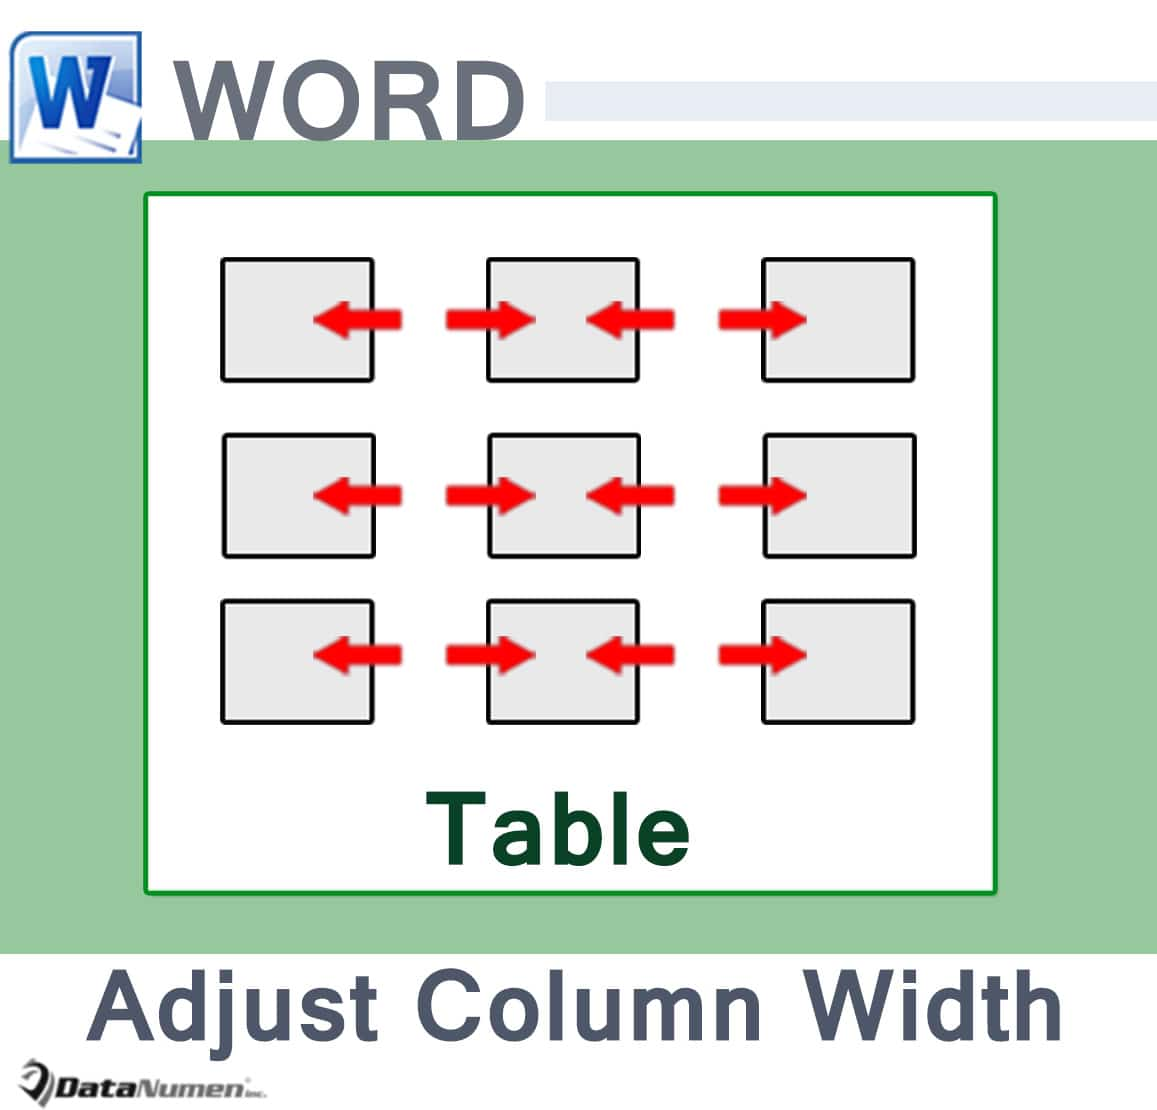 5 useful tips to adjust column width in your word table for Table column width